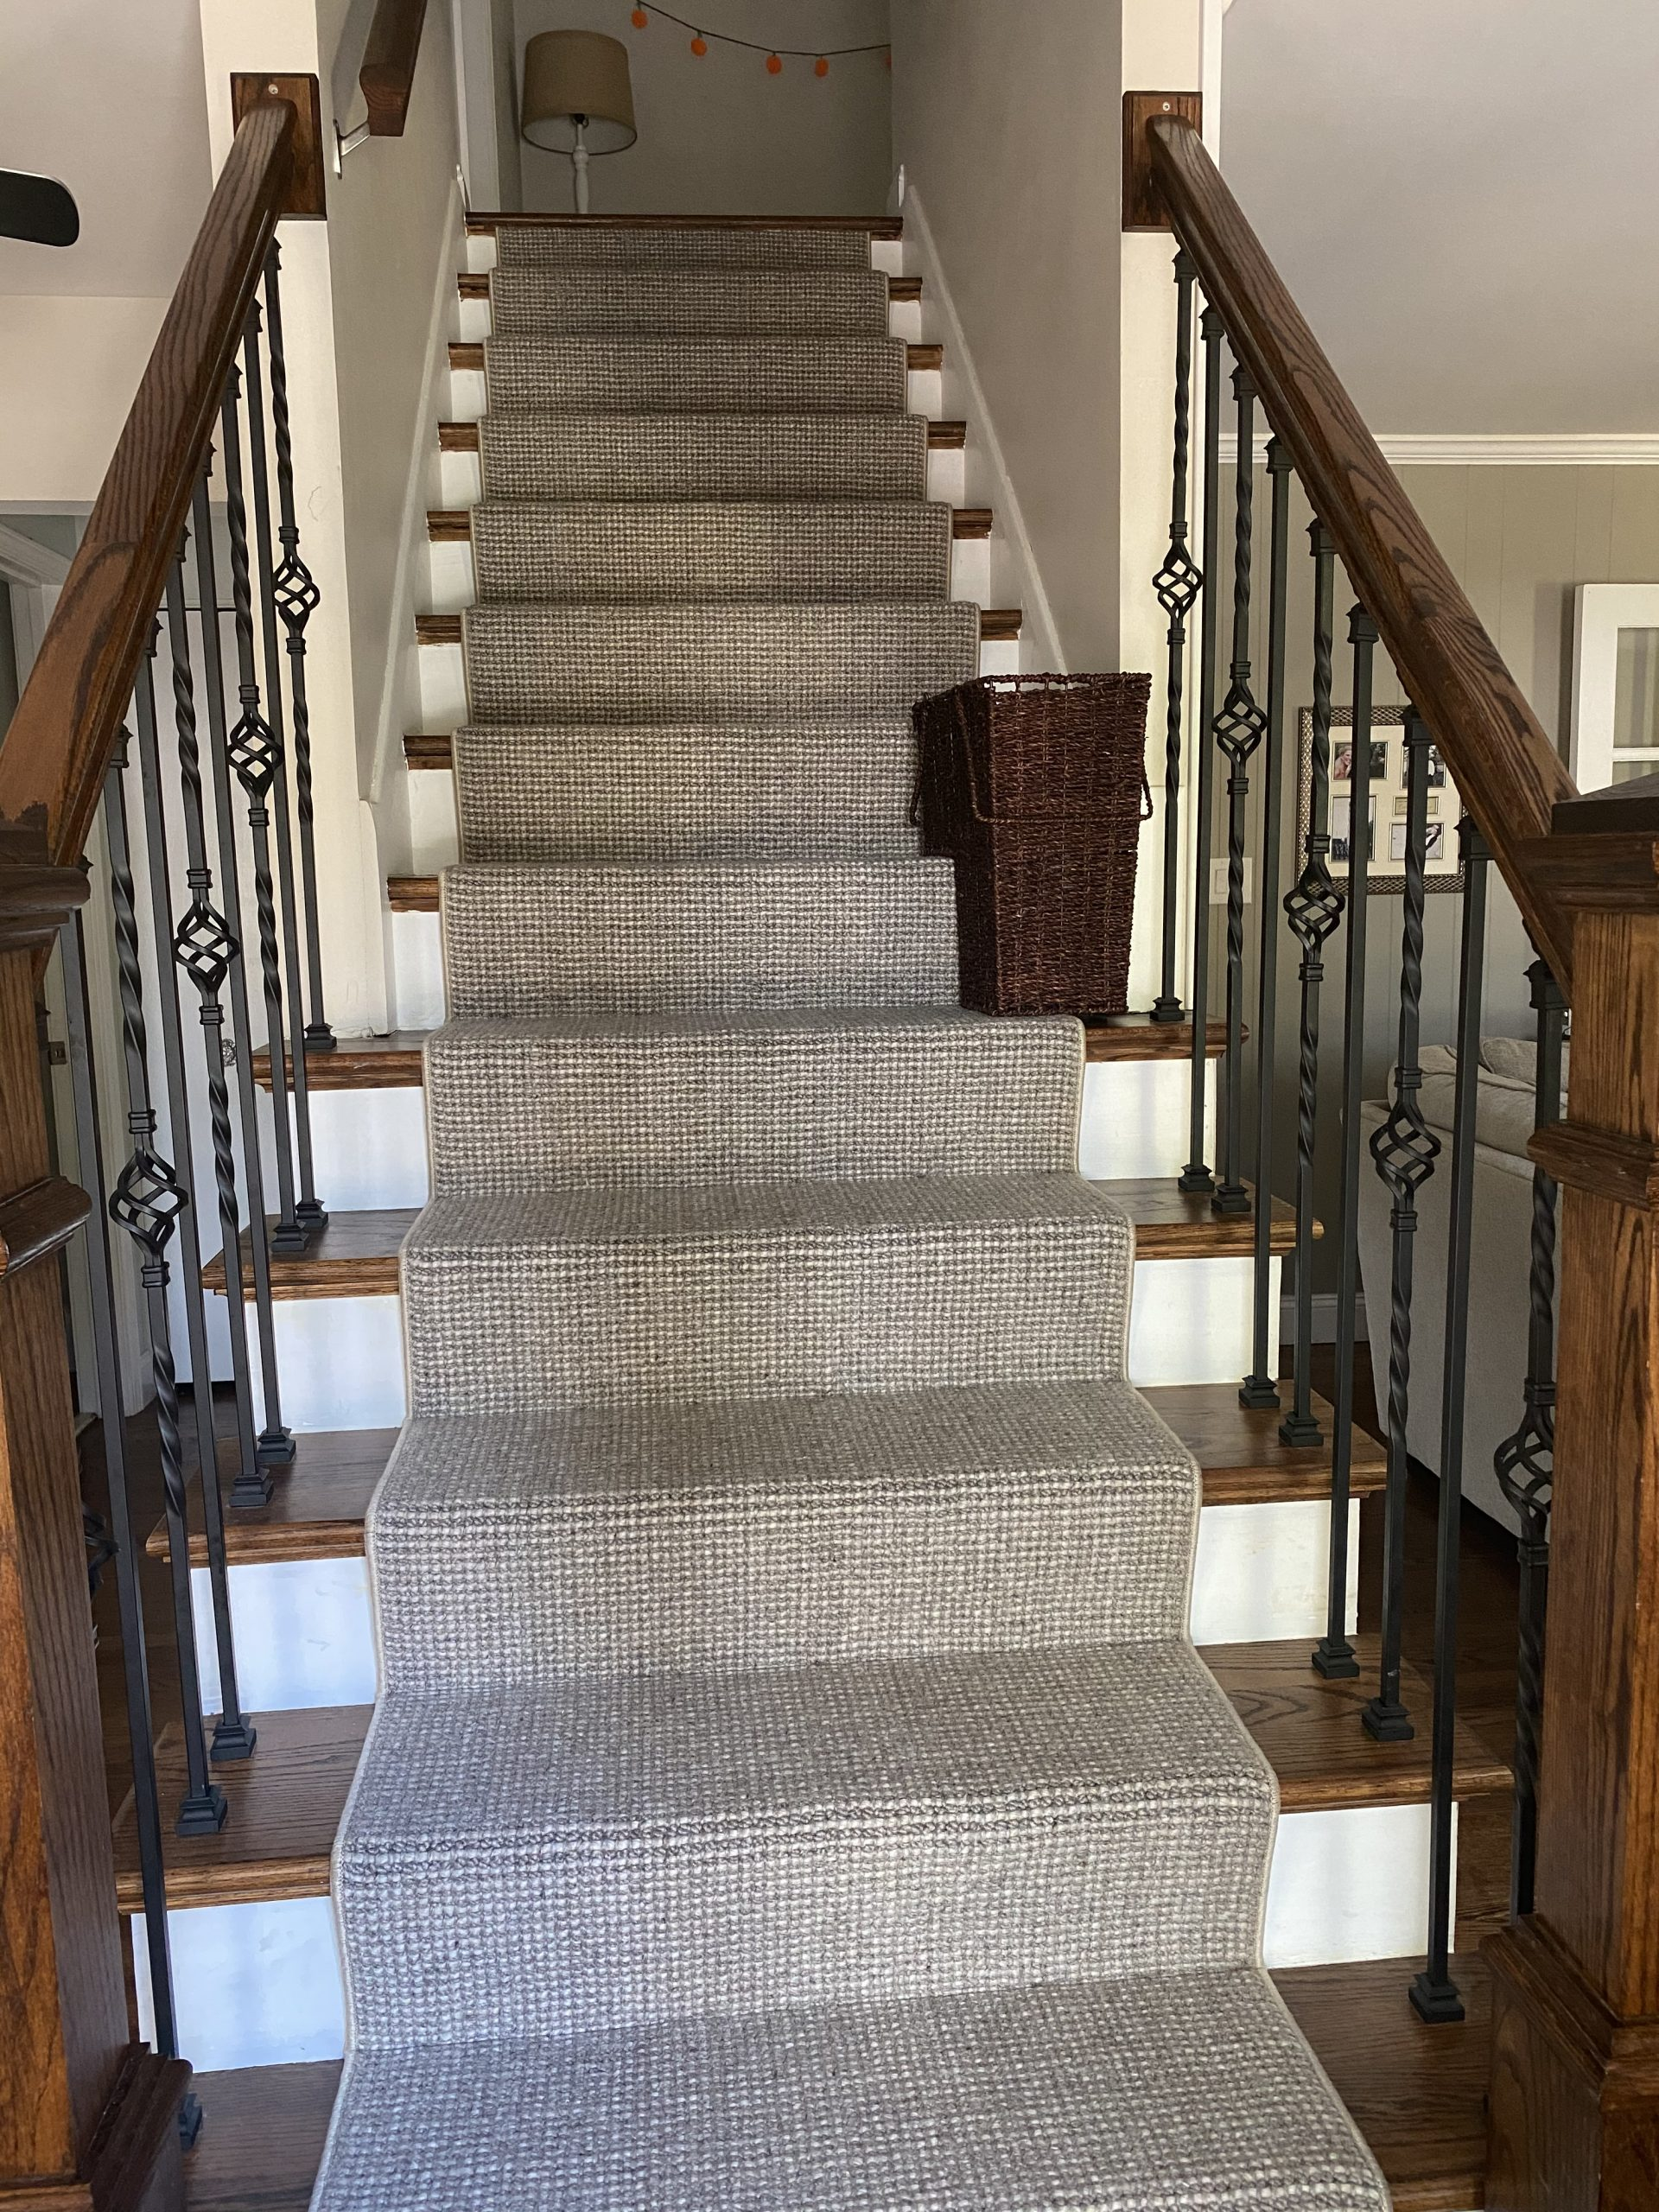 Neutral colored Stanton carpet runner